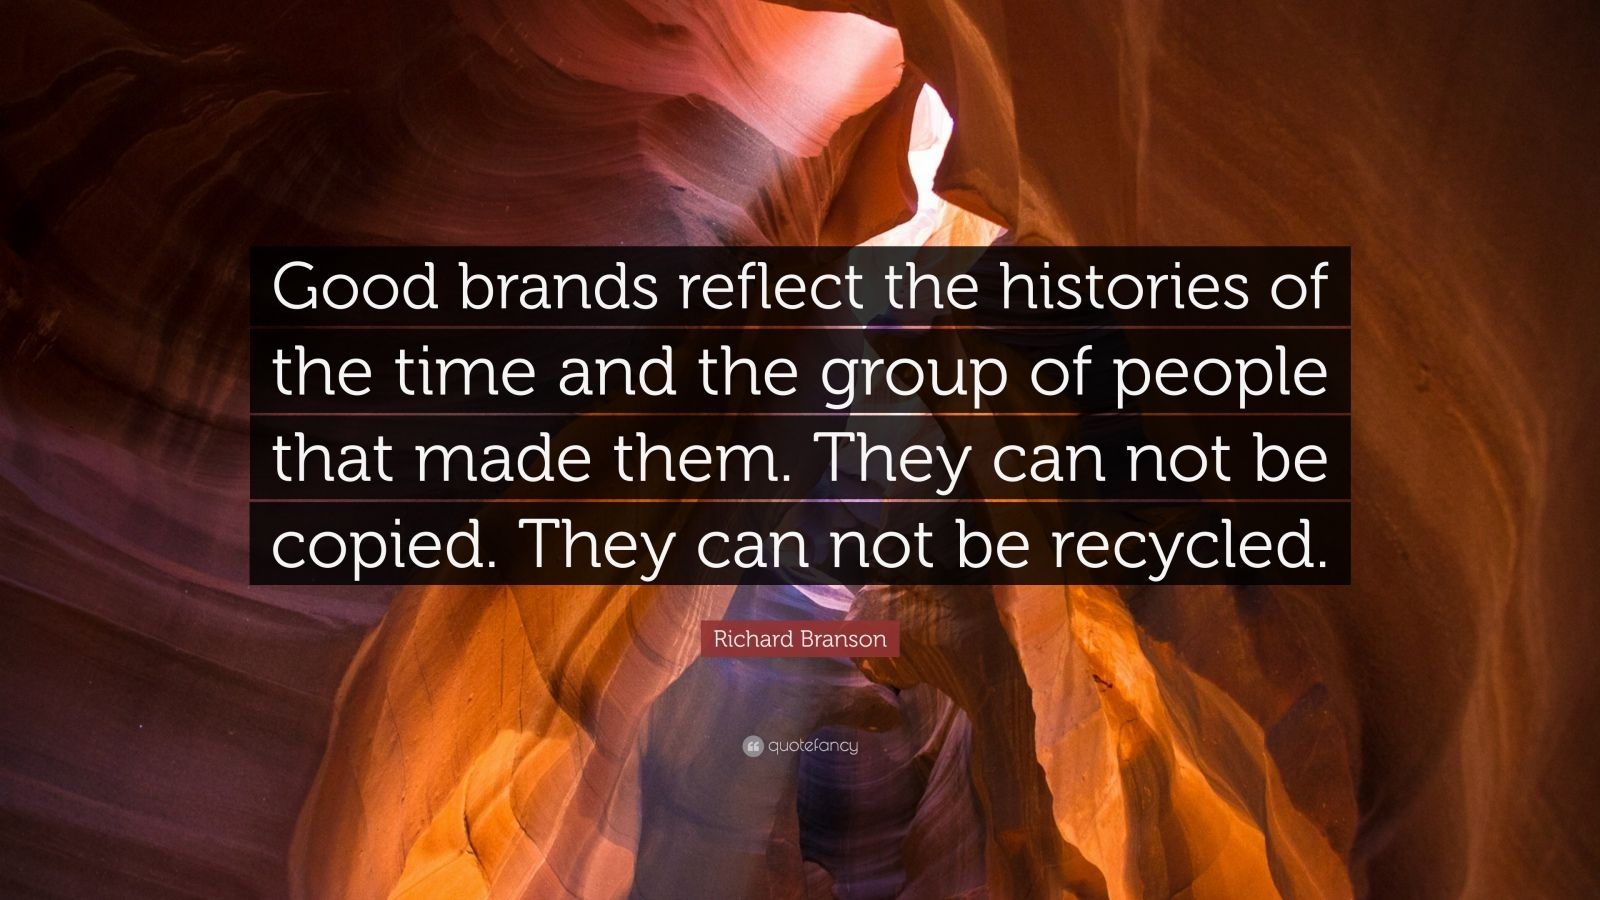 """Richard Branson Quote: """"Good brands reflect the histories of the time and the group of people that made them. They can not be copied. They can not be recycled."""""""